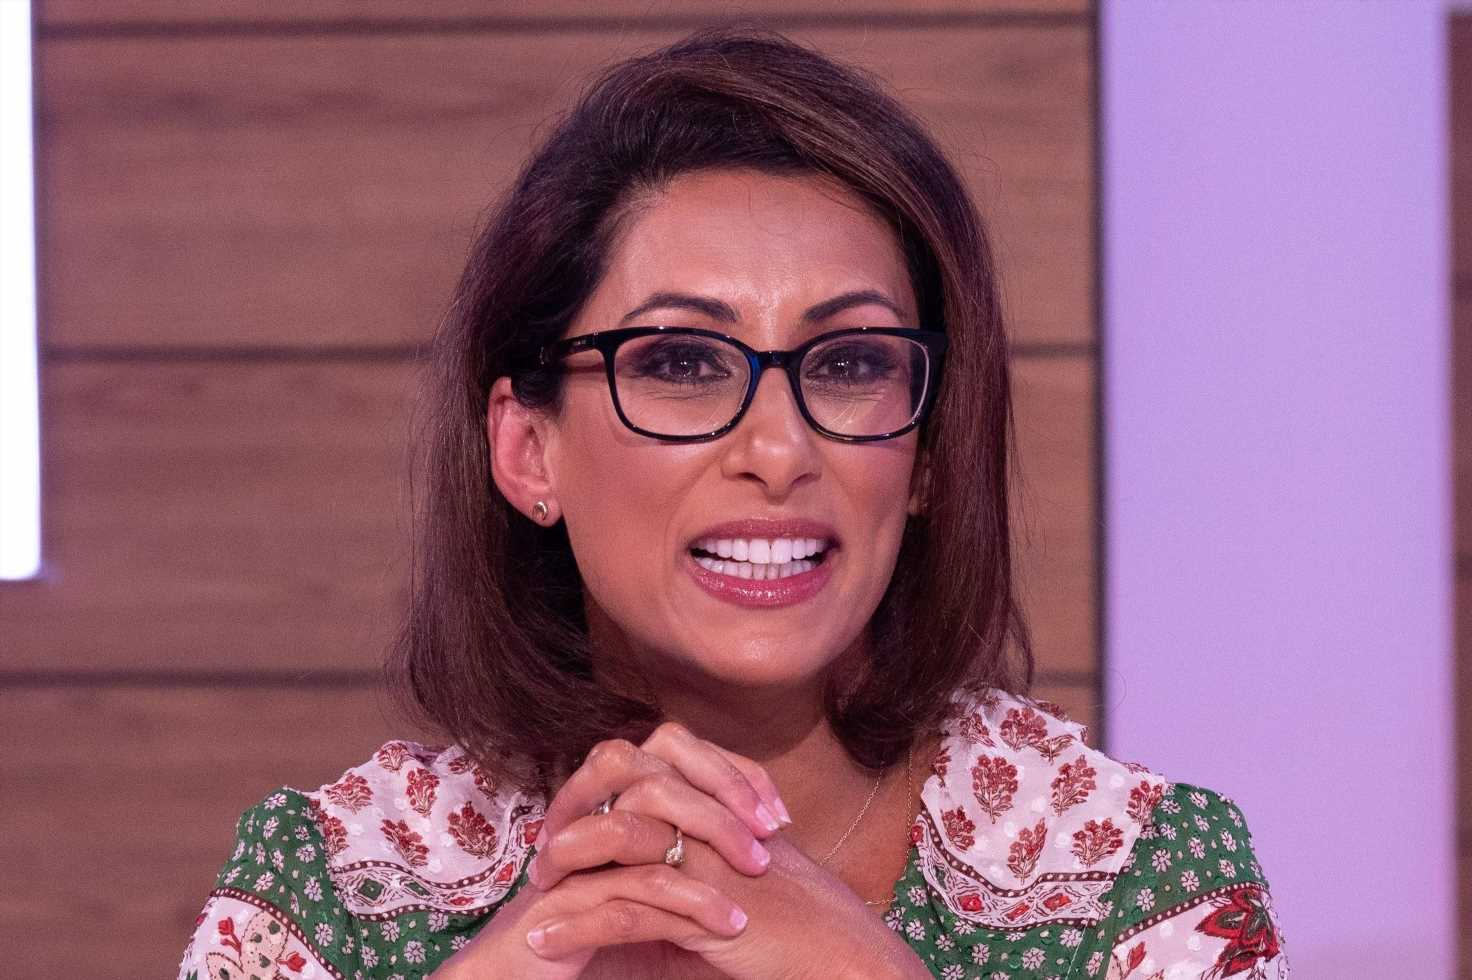 SAS star Saira Khan takes a swipe at Loose Women colleagues in fiery rant as feud continues